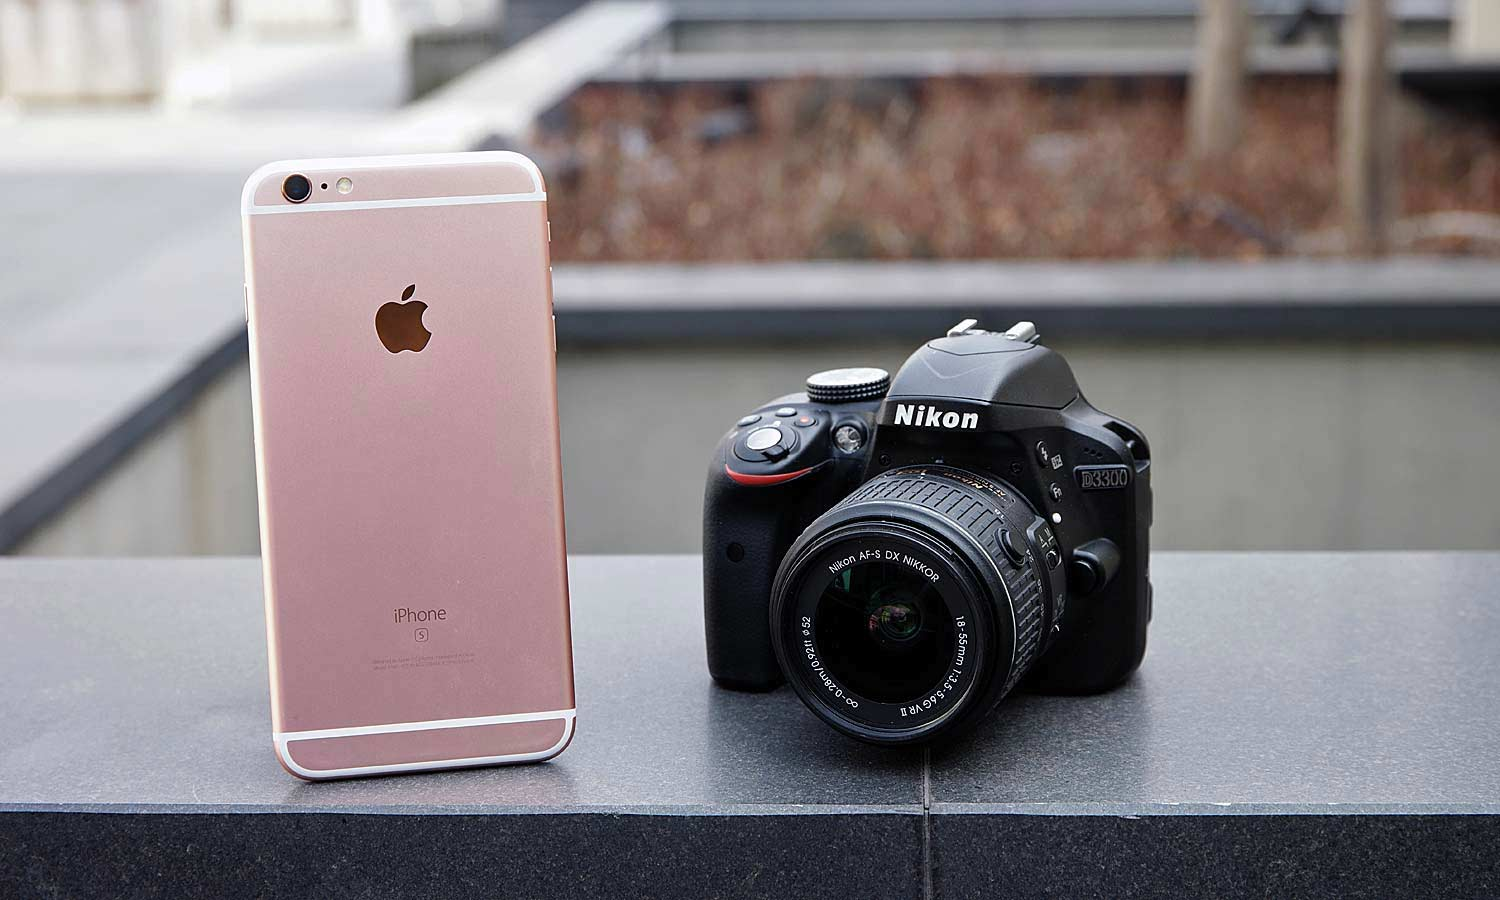 Camera Face-Off: Can an iPhone Beat a DSLR? | Tom's Guide